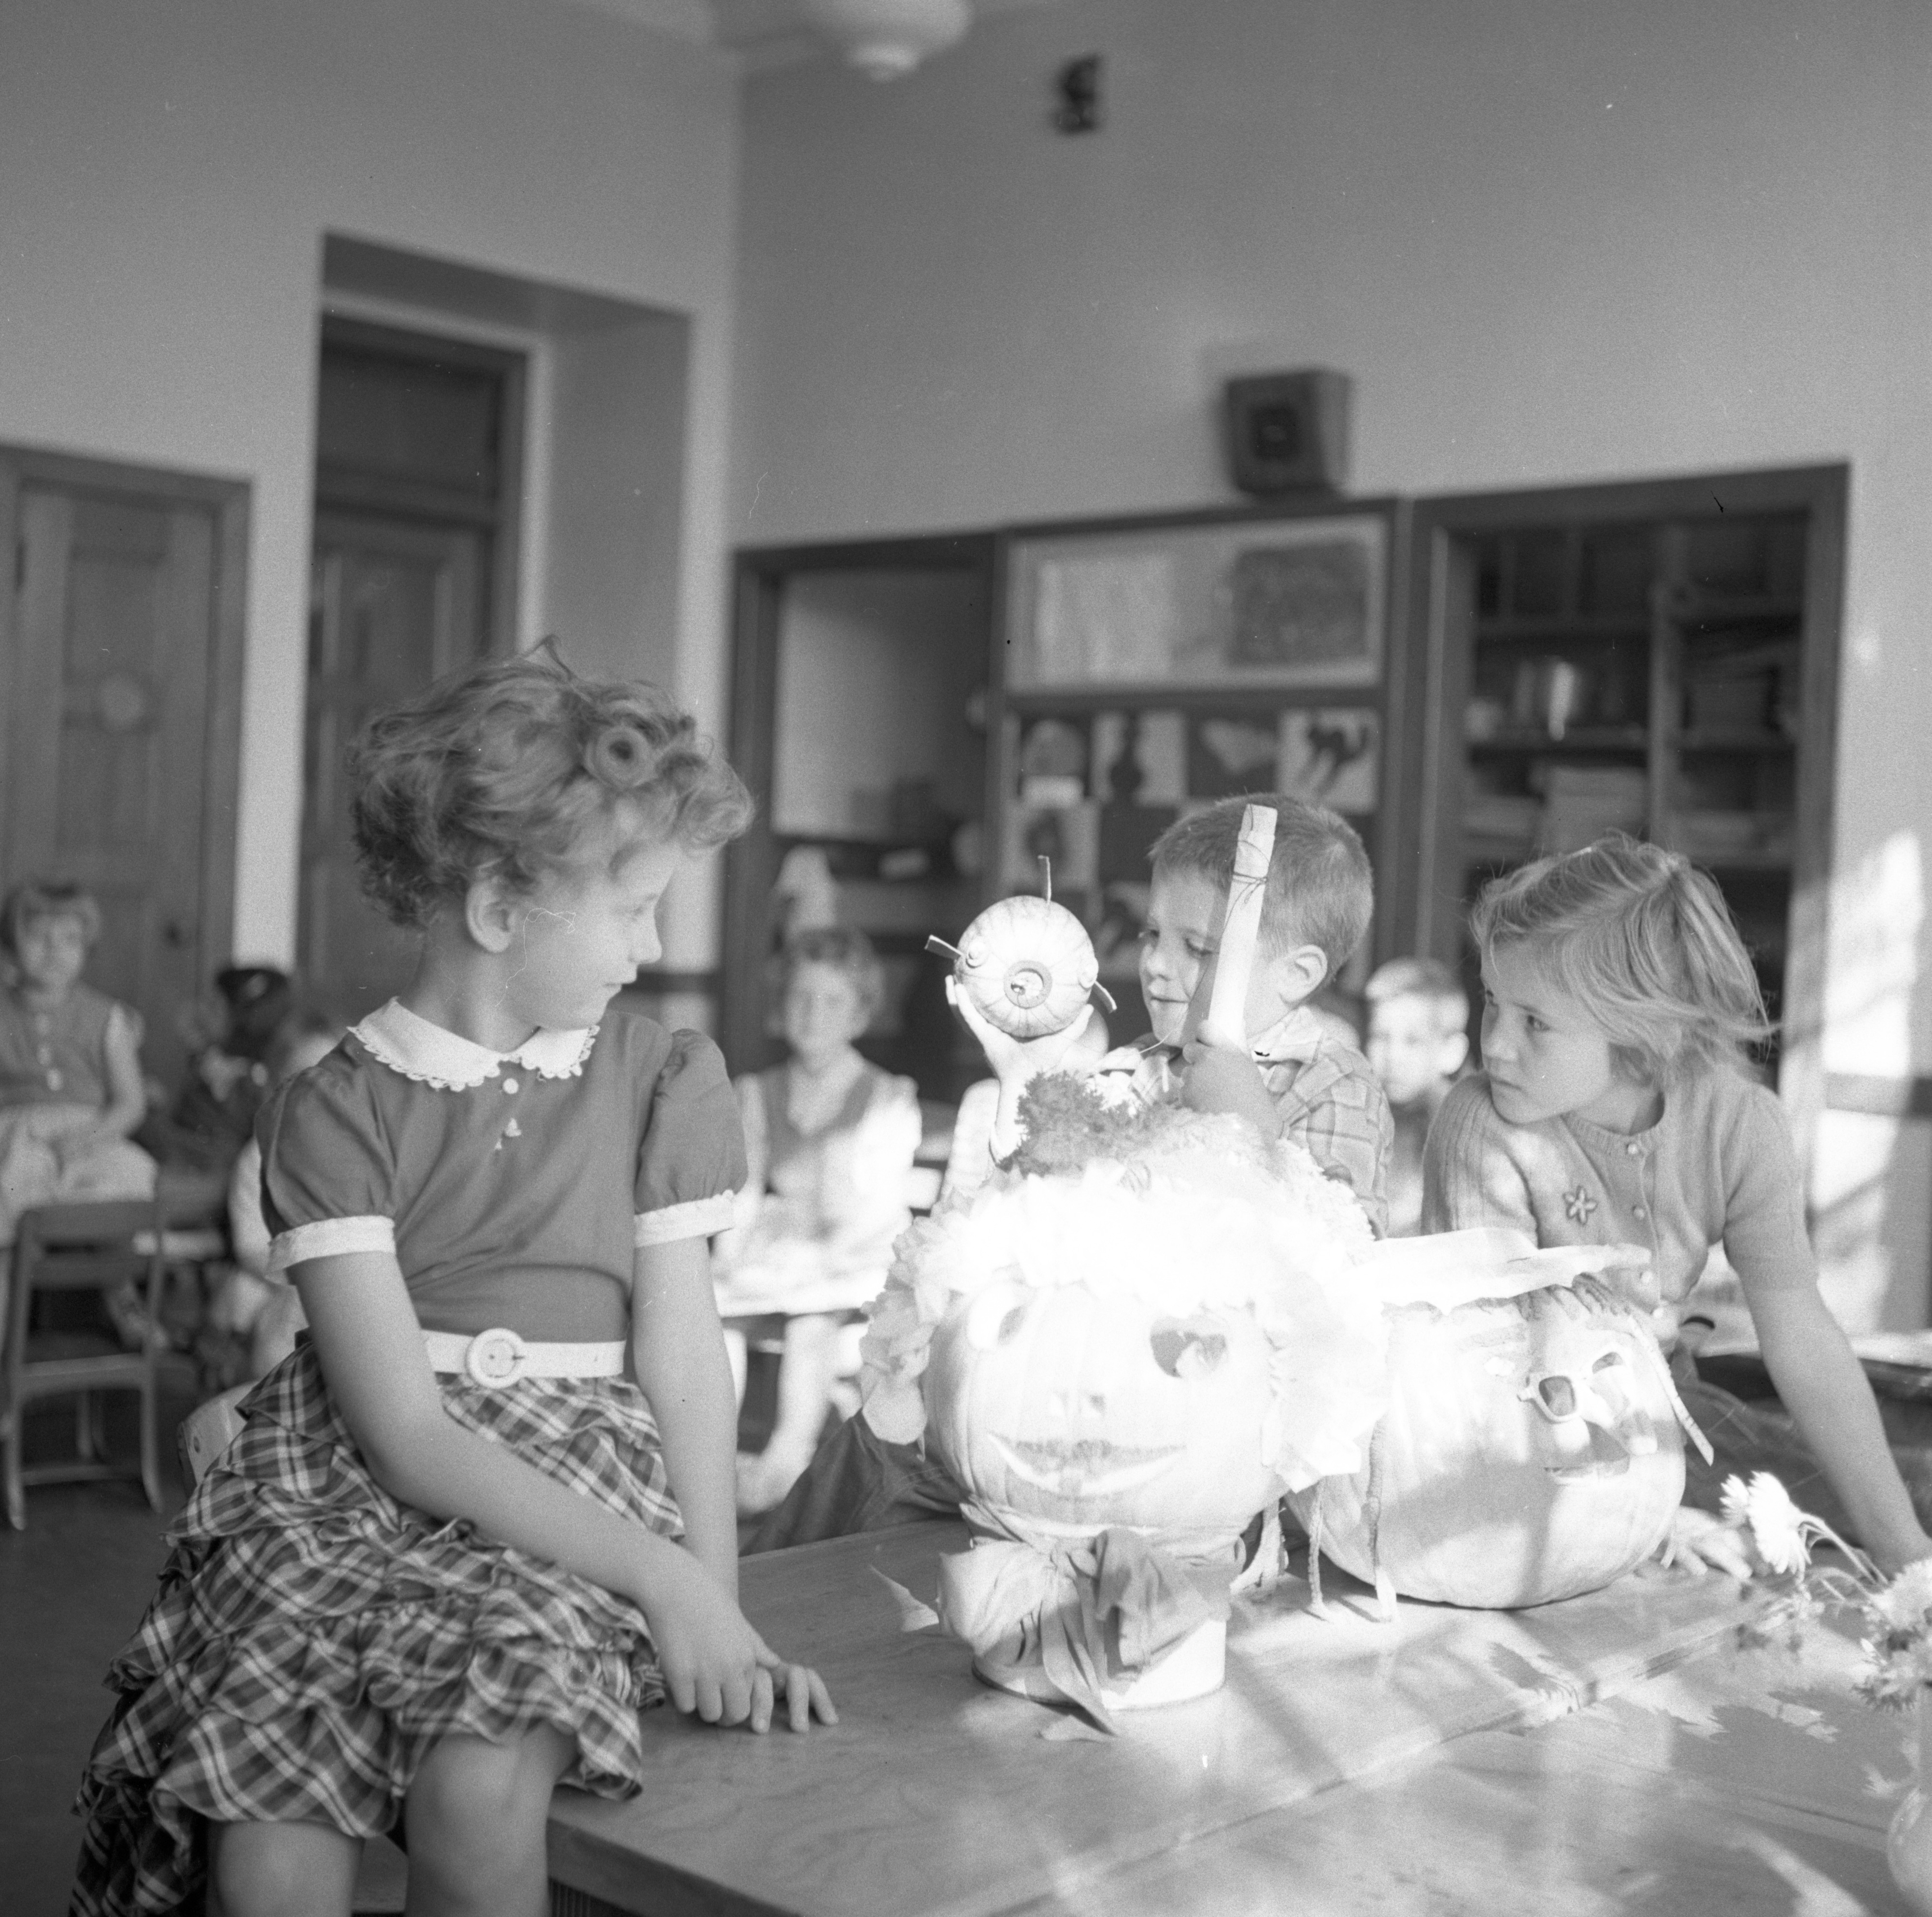 Mack School Students With Halloween Pumpkin Contest Entries, October 1955 image